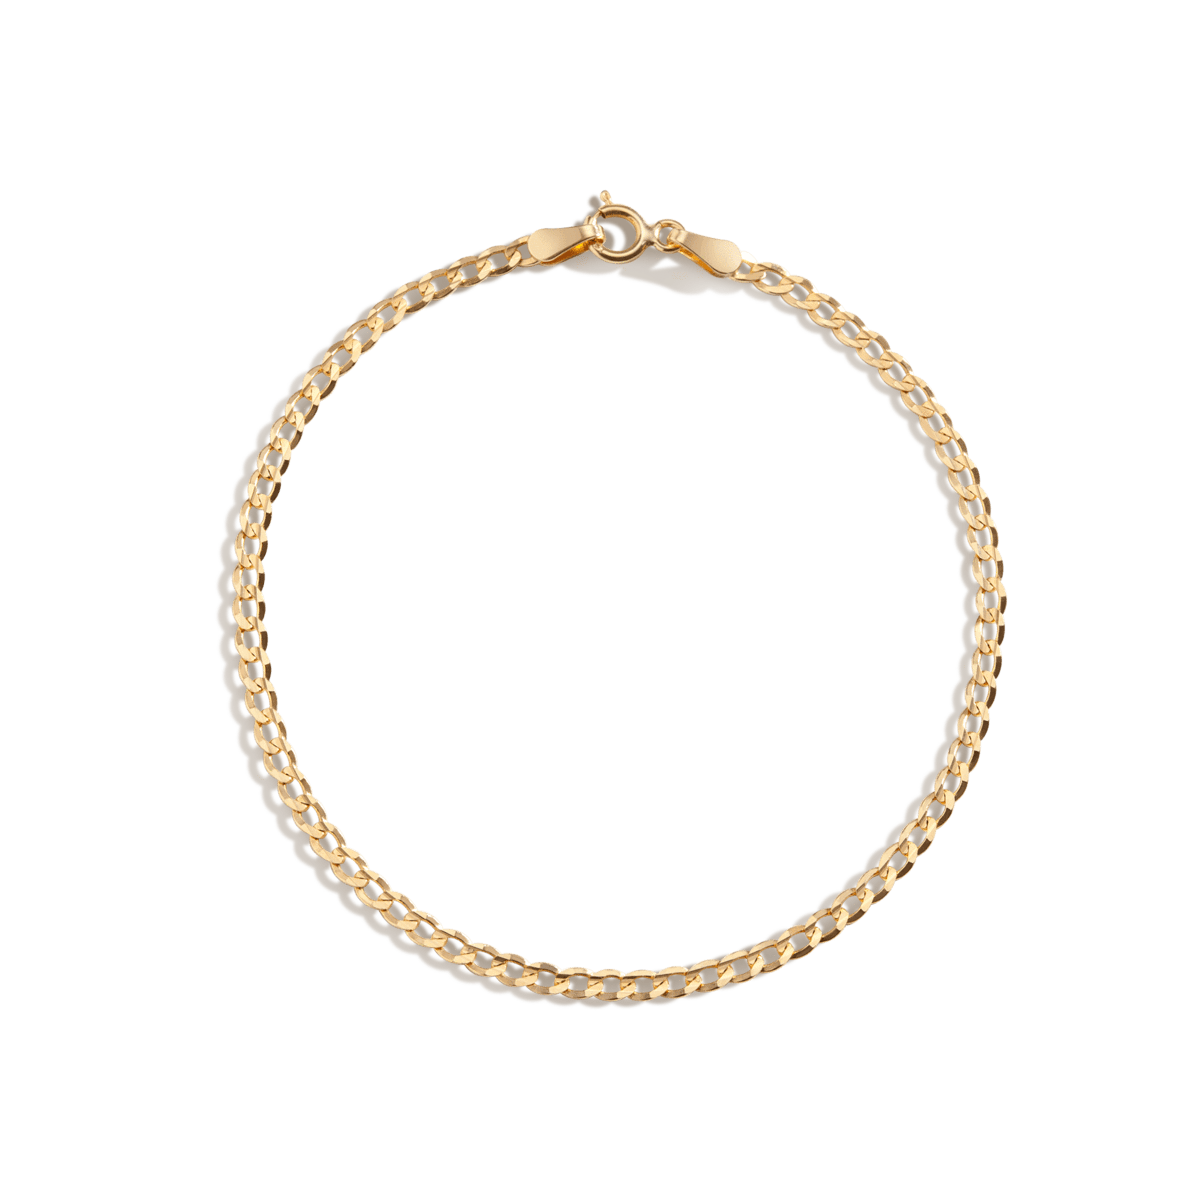 Medium Gold Curb Chain Bracelet